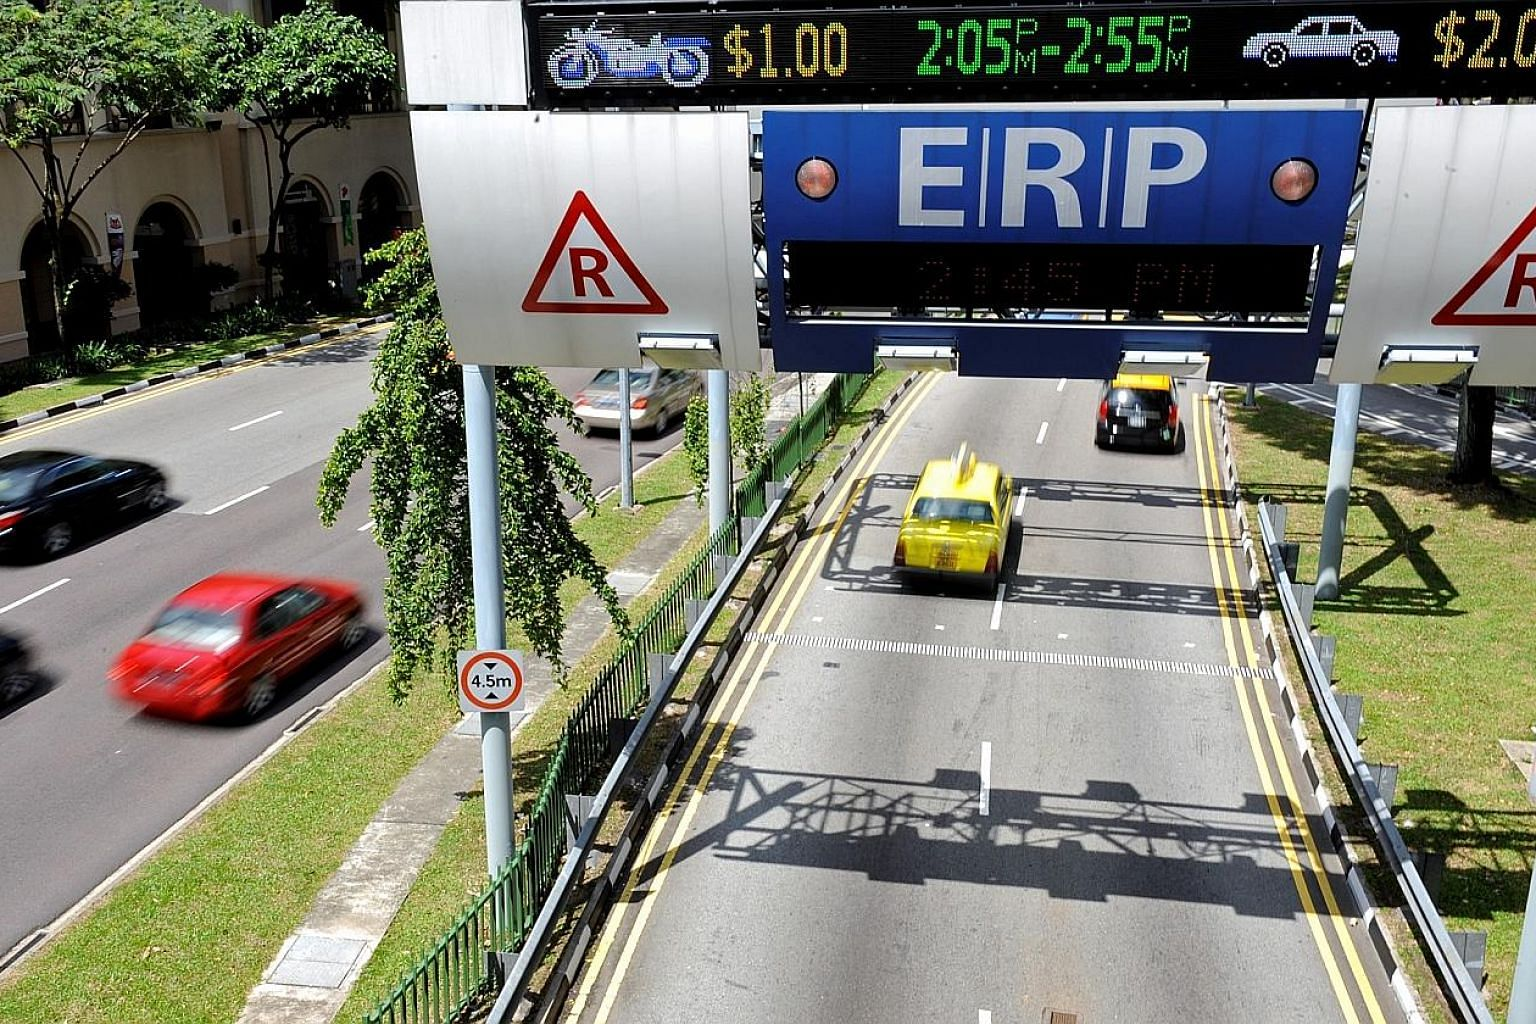 ERP rates vary for different roads and time slots, depending on traffic conditions in the area. This serves to encourage motorists to change their route, mode of transport or time of travel.